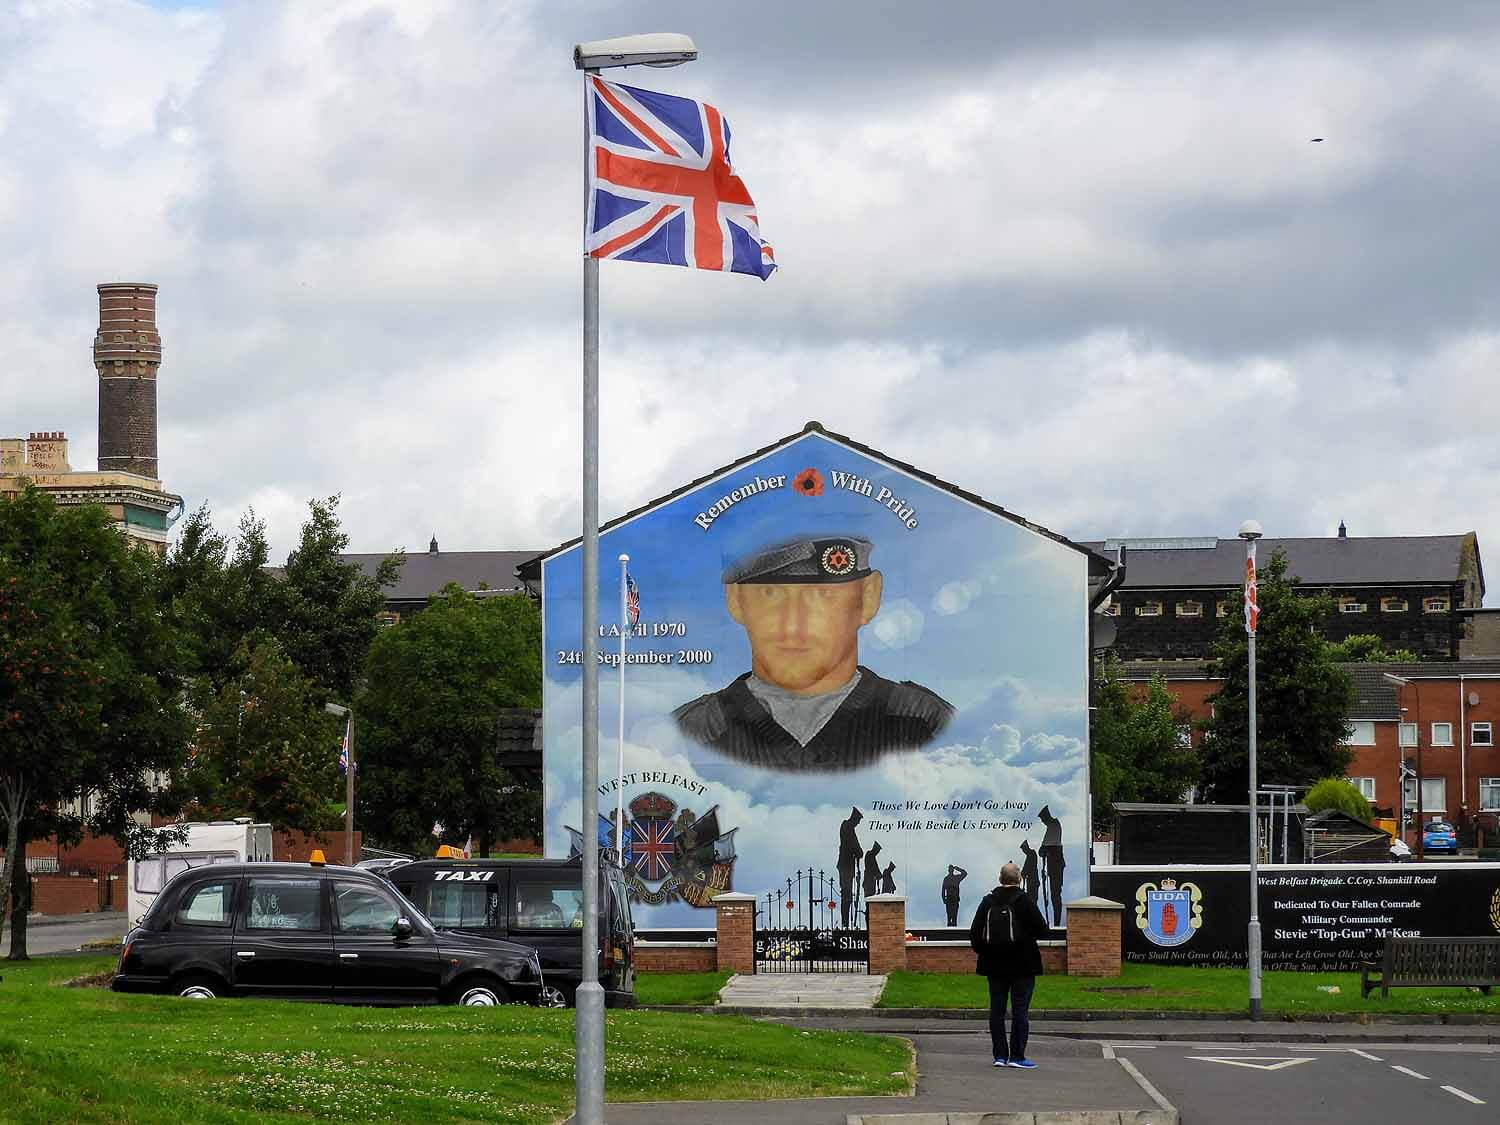 northern-ireland-belfast-black-cab-tour-art-shankill-memorial.jpg